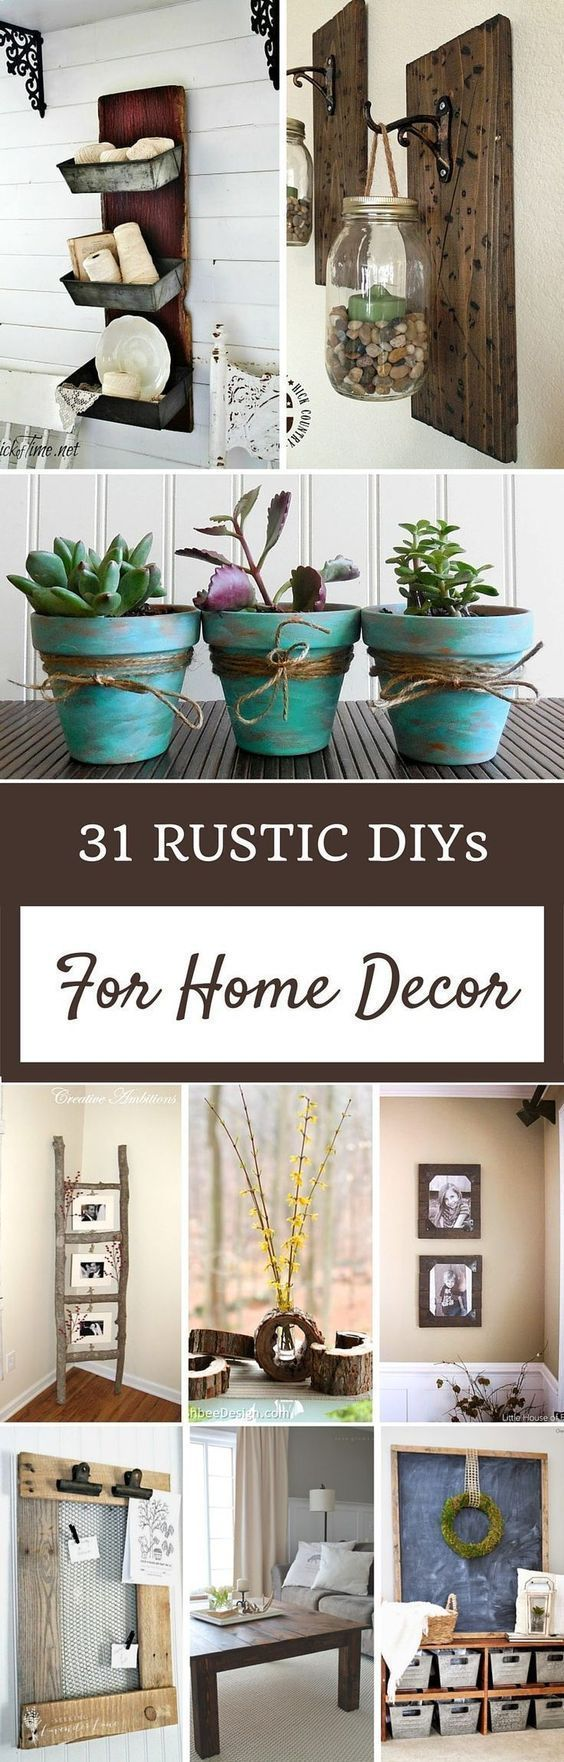 31 rustic diy home decor projects pinterest create interiors 31 rustic diy home decor projects create these farmhouse cottage do it yourself projects solutioingenieria Image collections